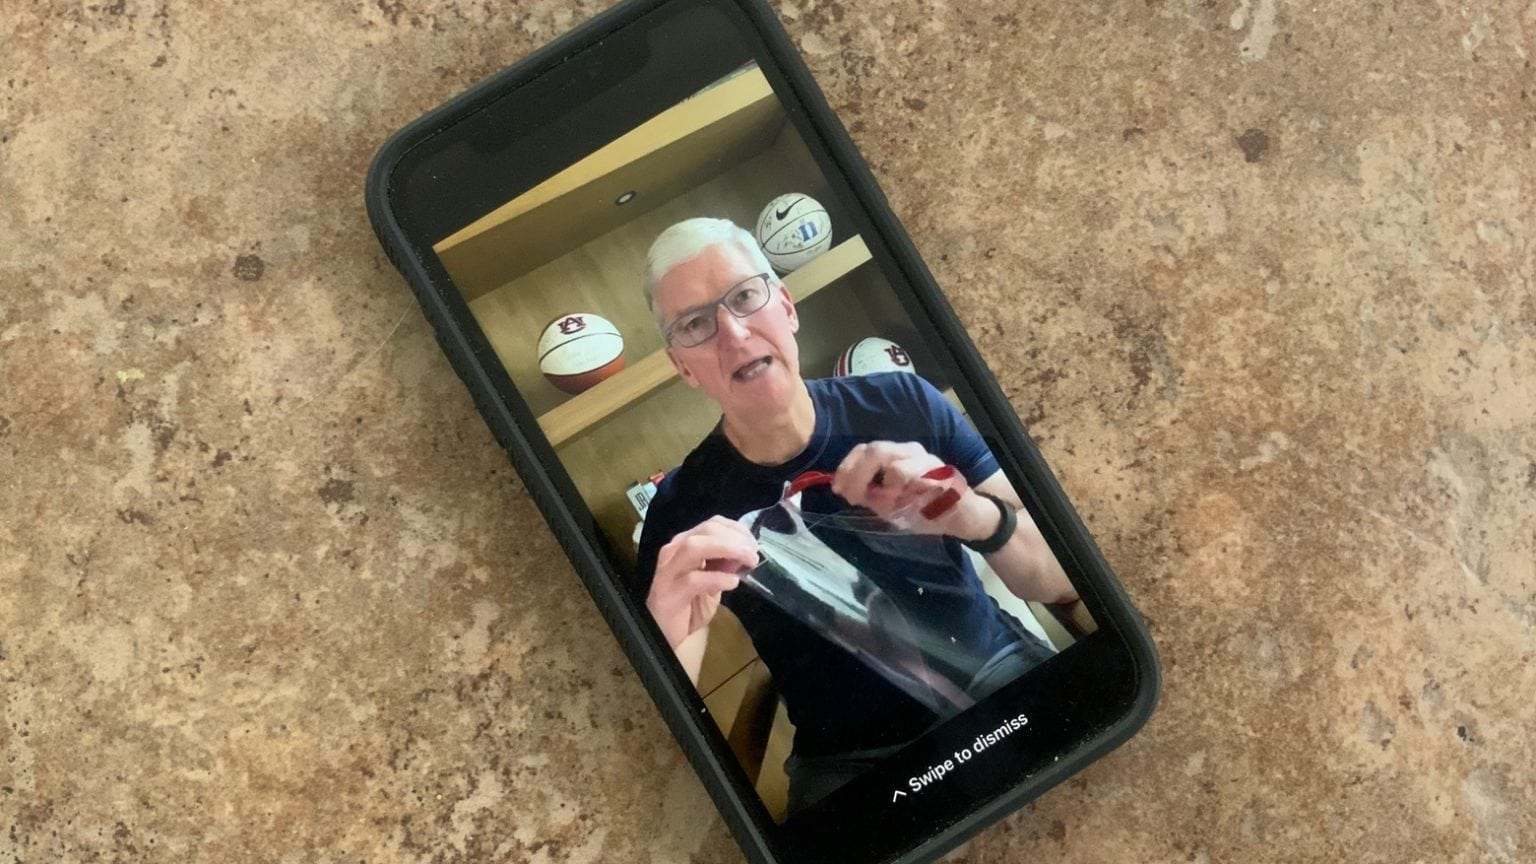 Apple CEO Tim Cook shows off a face shield Apple is making for medical workers.